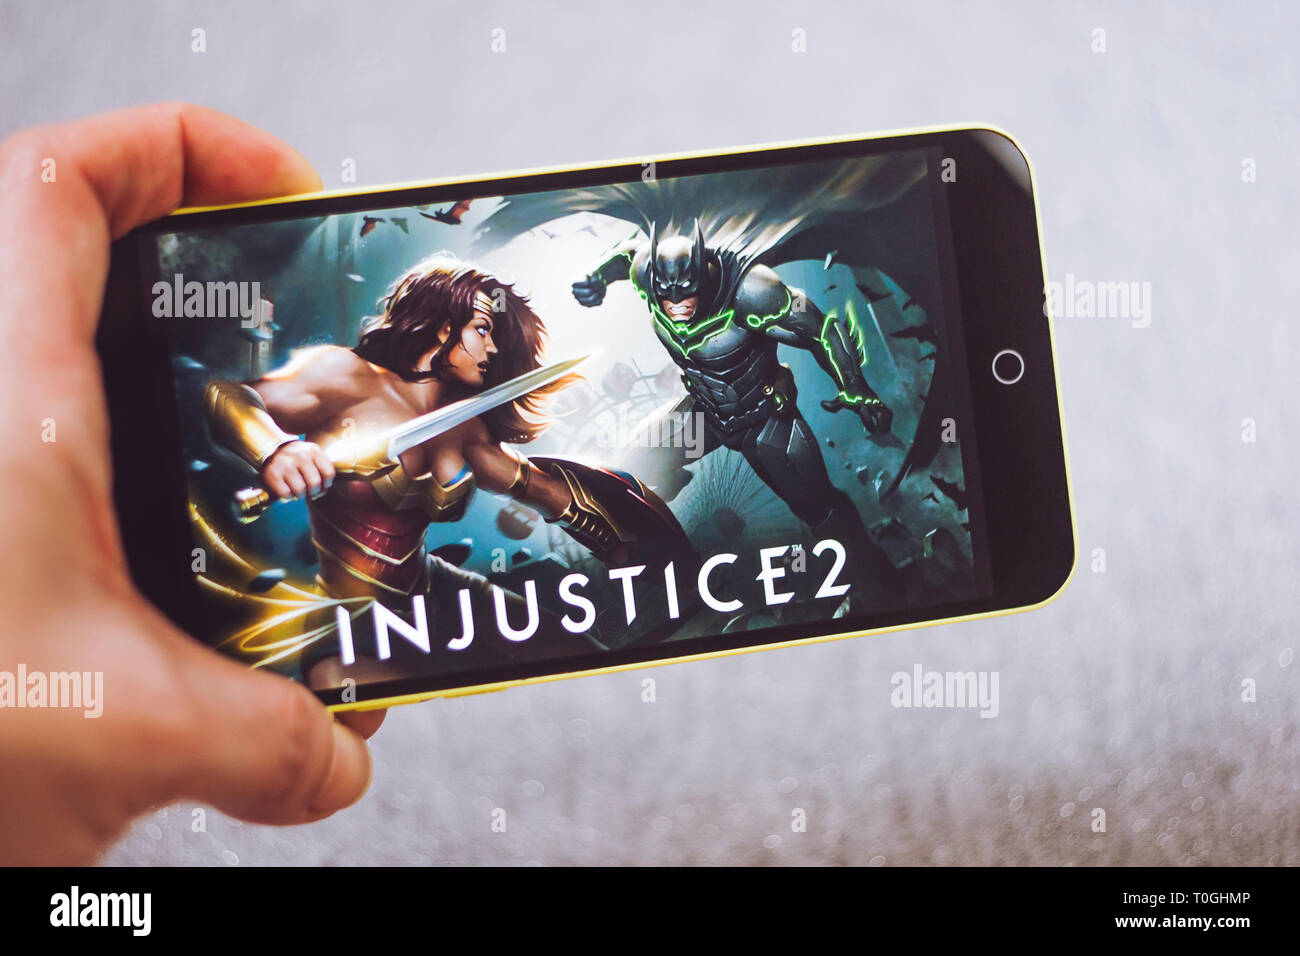 Berdyansk, Ukraine - March 4, 2019: Hands holding a smartphone with Injustice 2 game on display screen. - Stock Image